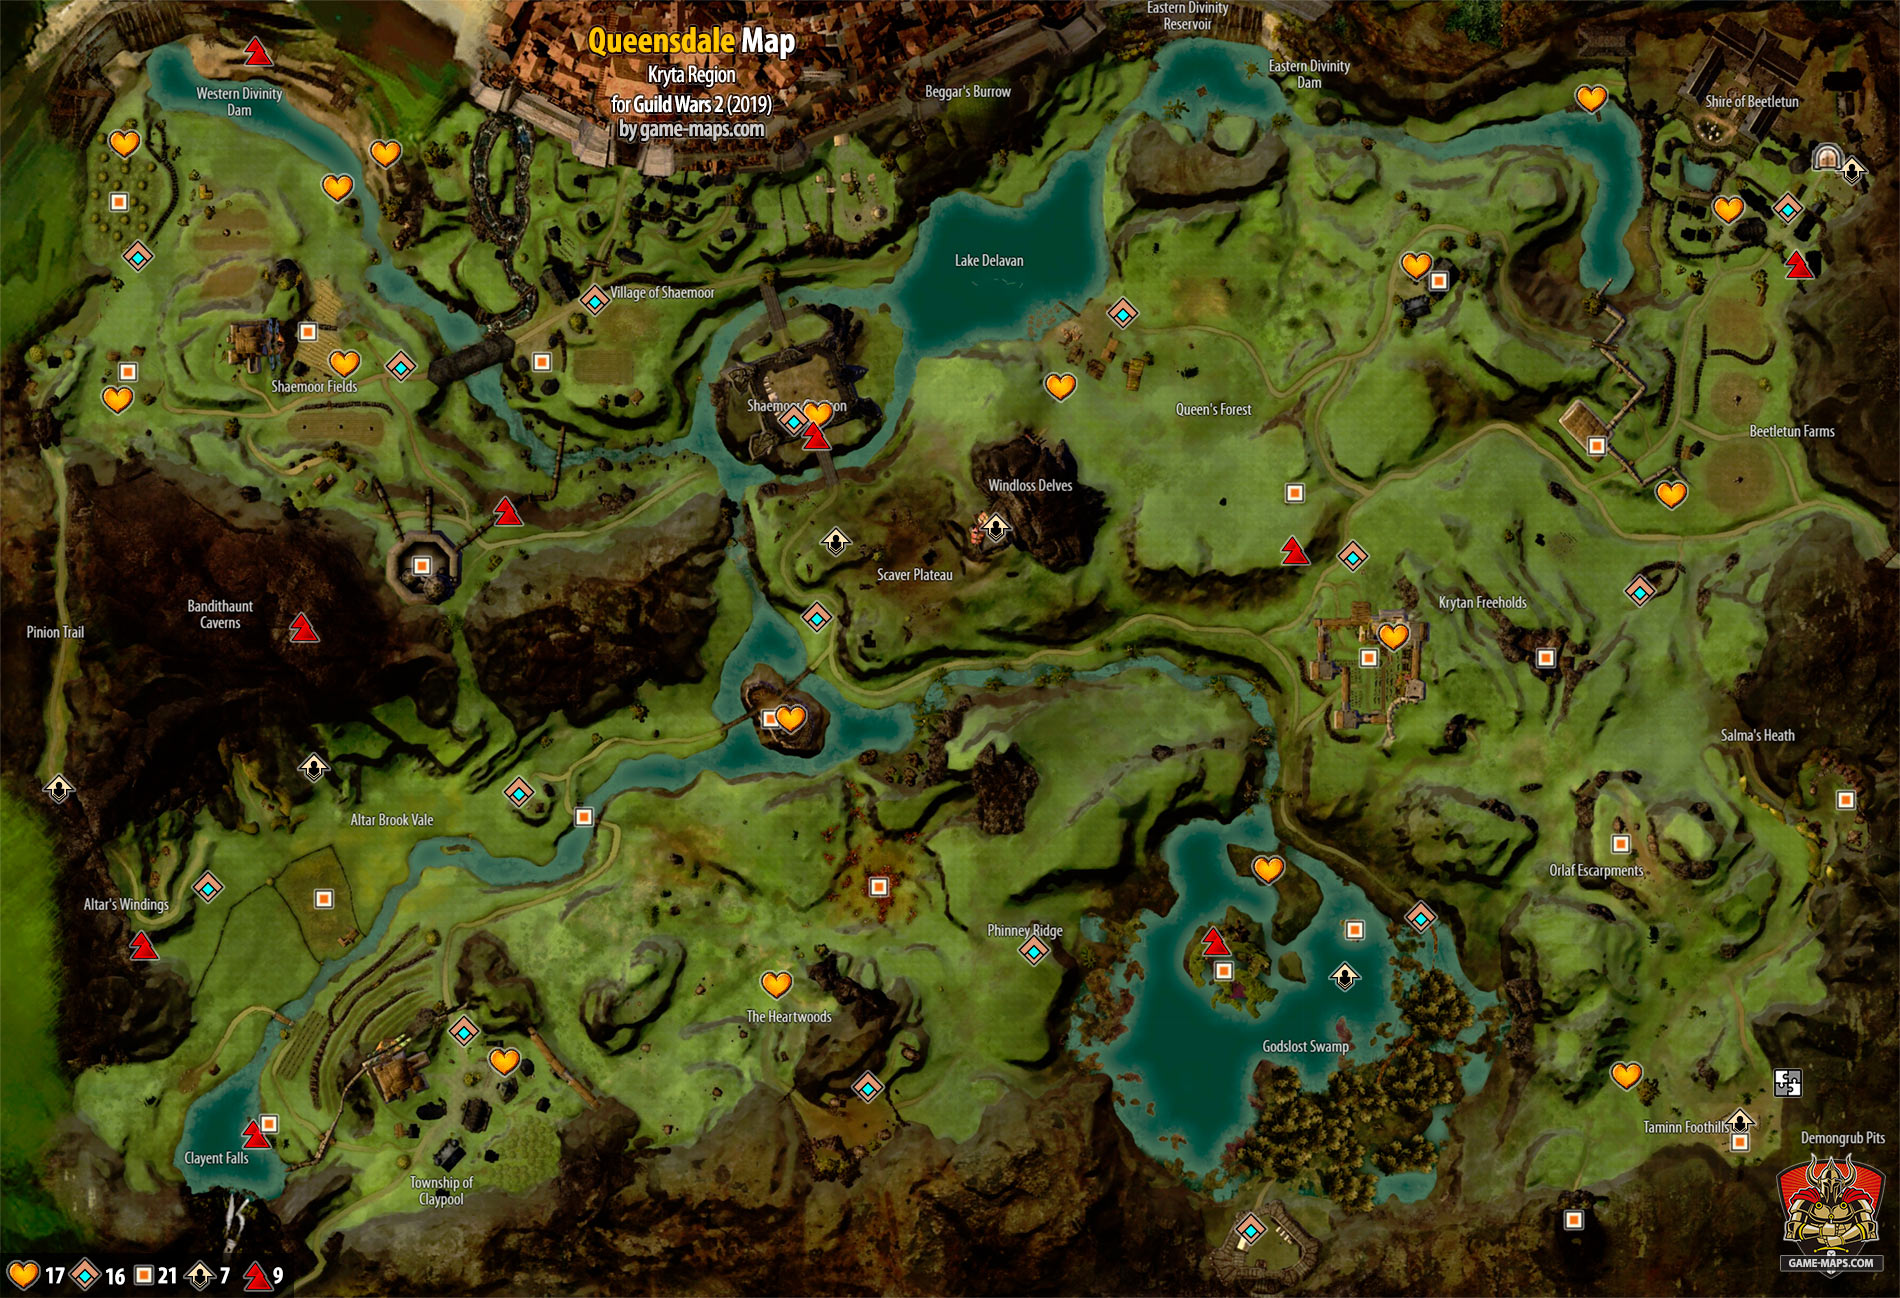 Guild Wars 1 World Map.Queensdale Map Guild Wars 2 Game Maps Com